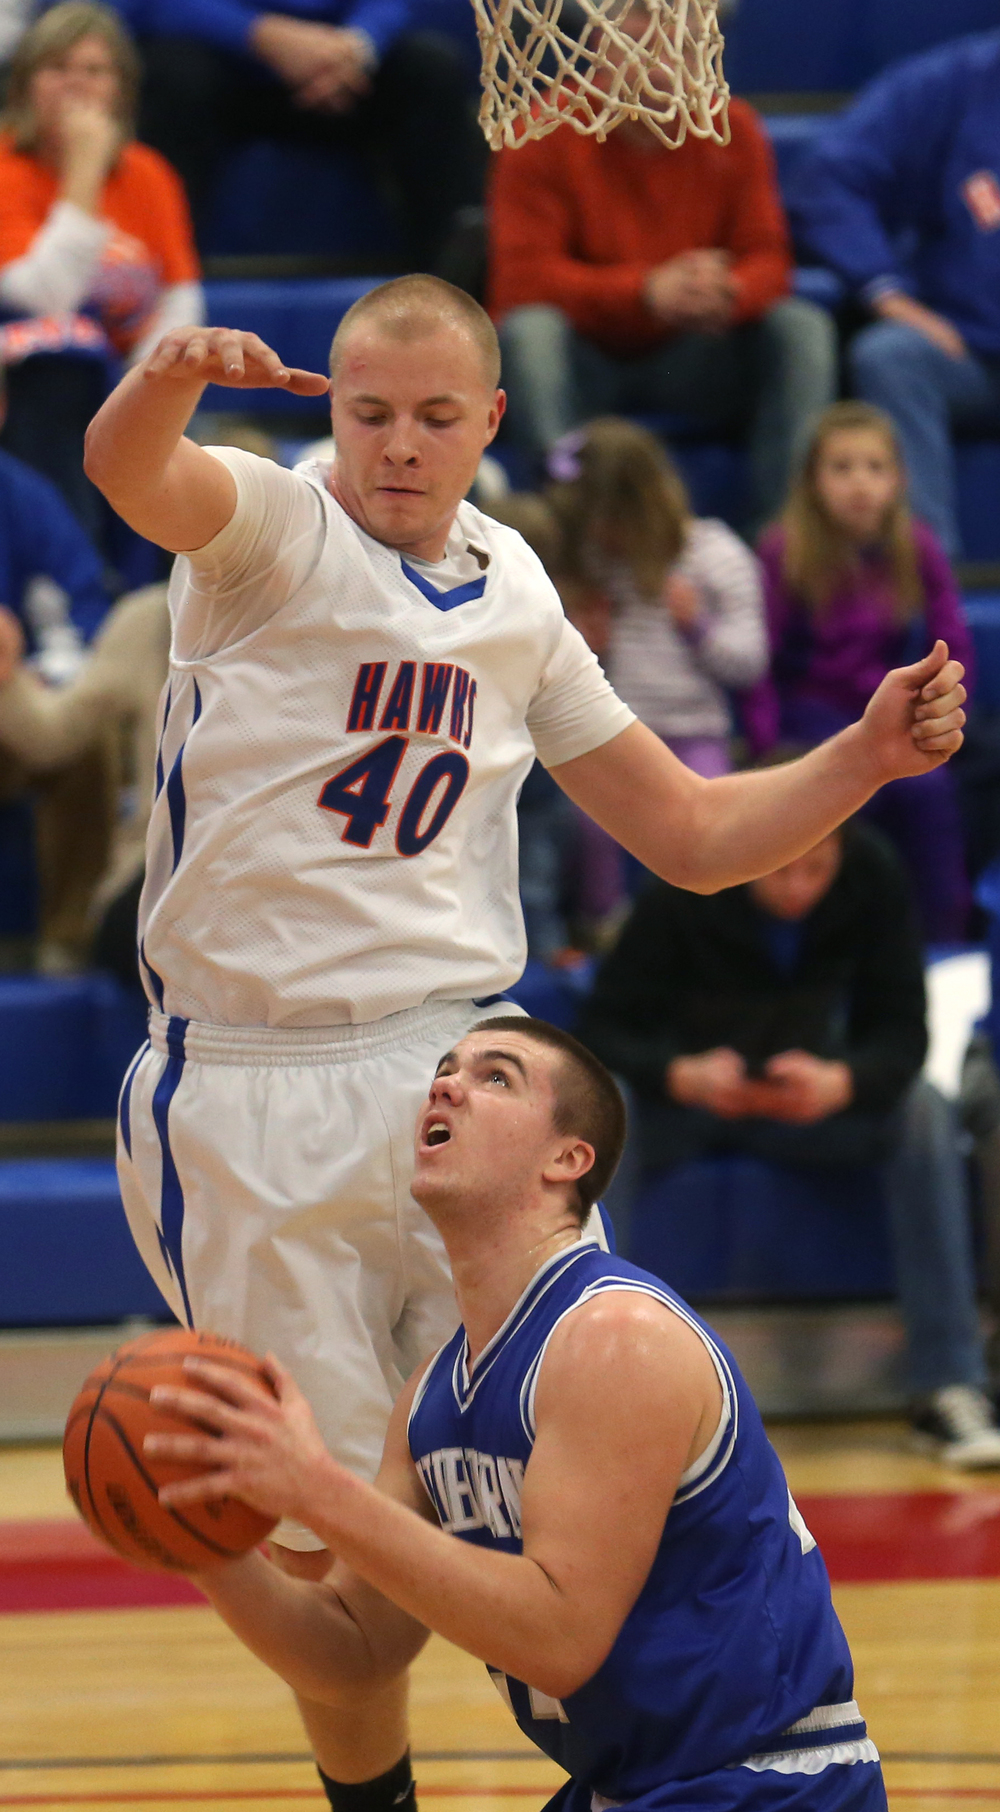 Riverton's Blake Suhling defends against Auburn player Scott McDermand. Auburn defeated Riverton 55-52 in boys quarterfinal action at the Sangamon County Basketball Tournament at Cass gymnasium at Lincoln Land Community College in Springfield on Tuesday evening, Jan. 13, 2015. David Spencer/The State Journal-Register